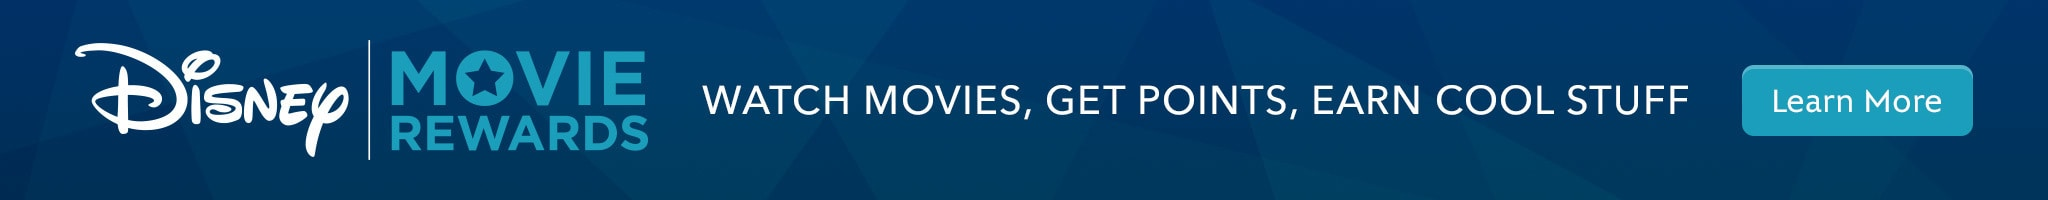 Disney Movie Rewards Watch Movies, Get Points, Earn Cool Stuff - Learn More